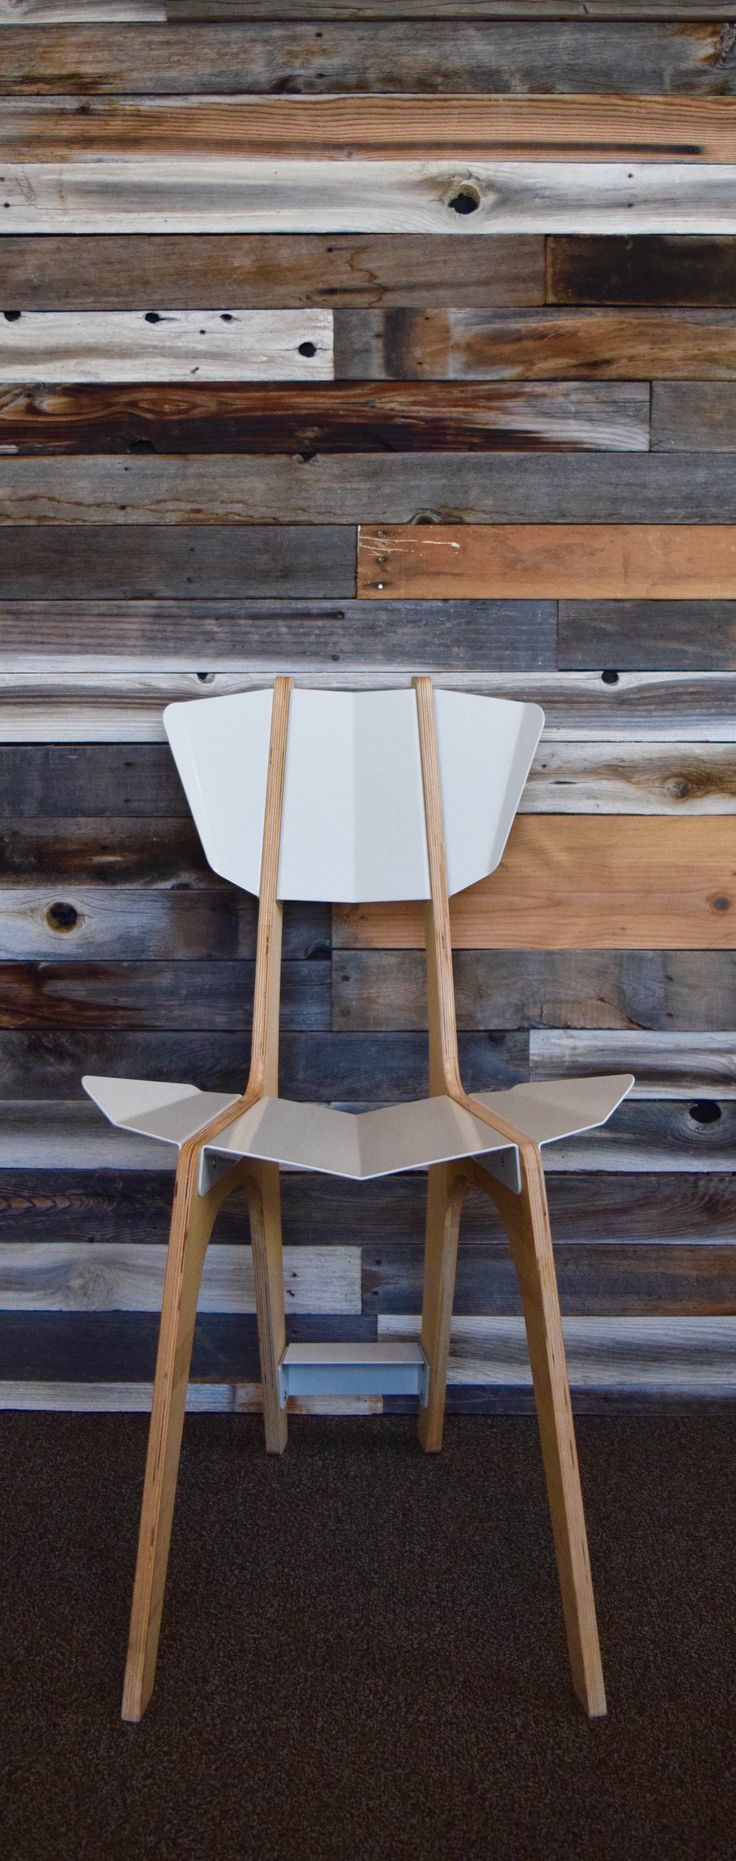 Attractive Desert Alchemy Is A Furniture Design Studio In Salt Lake City. This Chair  Uses Laser